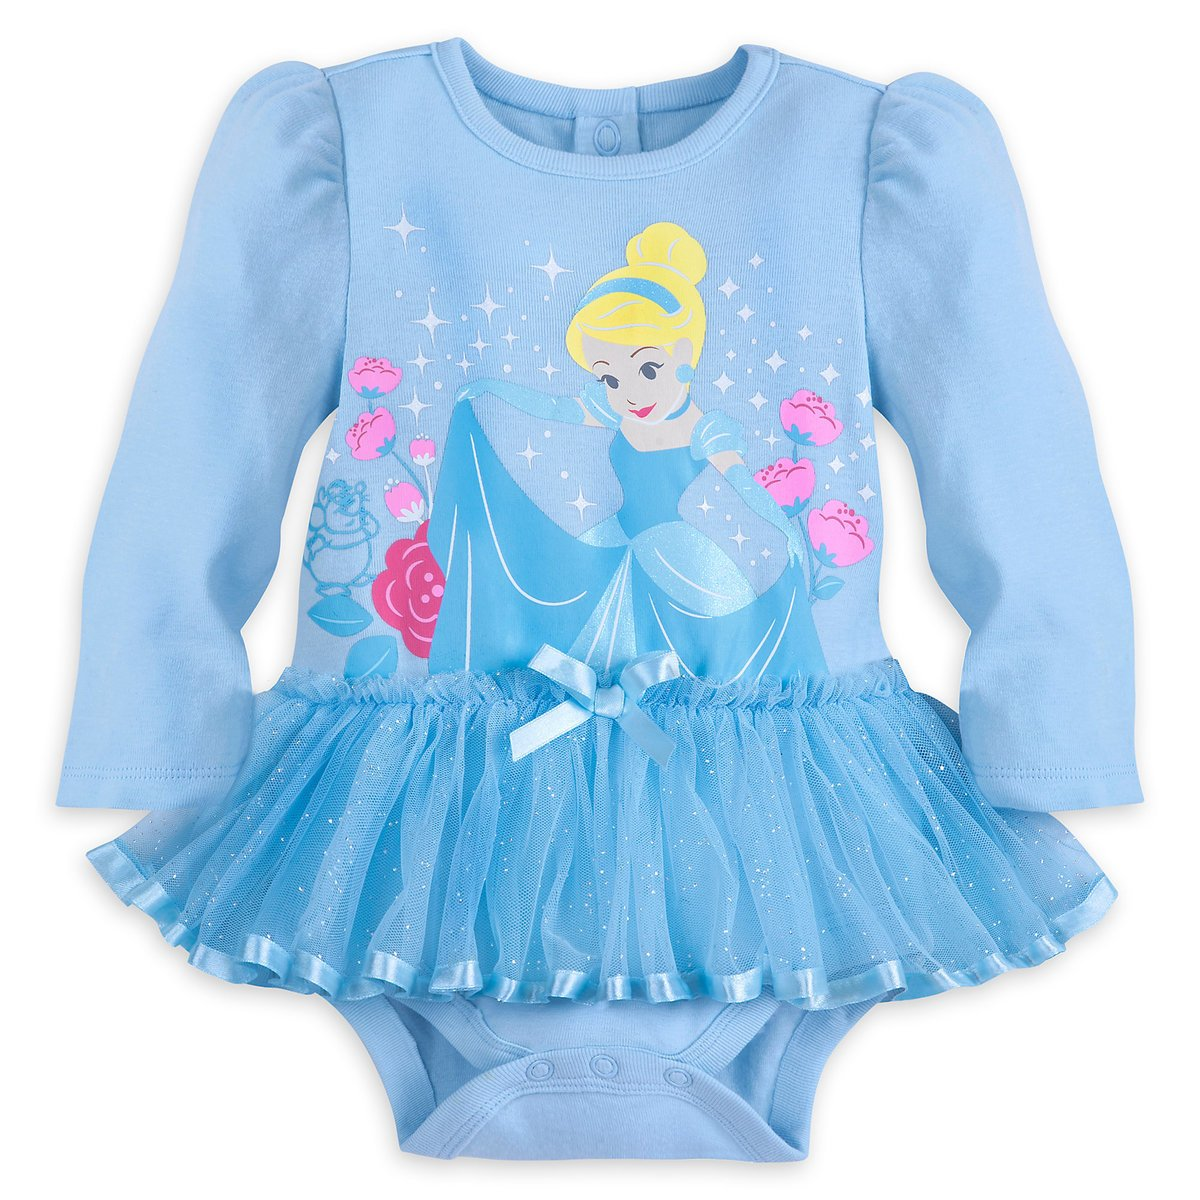 6ff0f12d42fc Amazon.com  Disney Store Cinderella Baby Bodysuit  Clothing